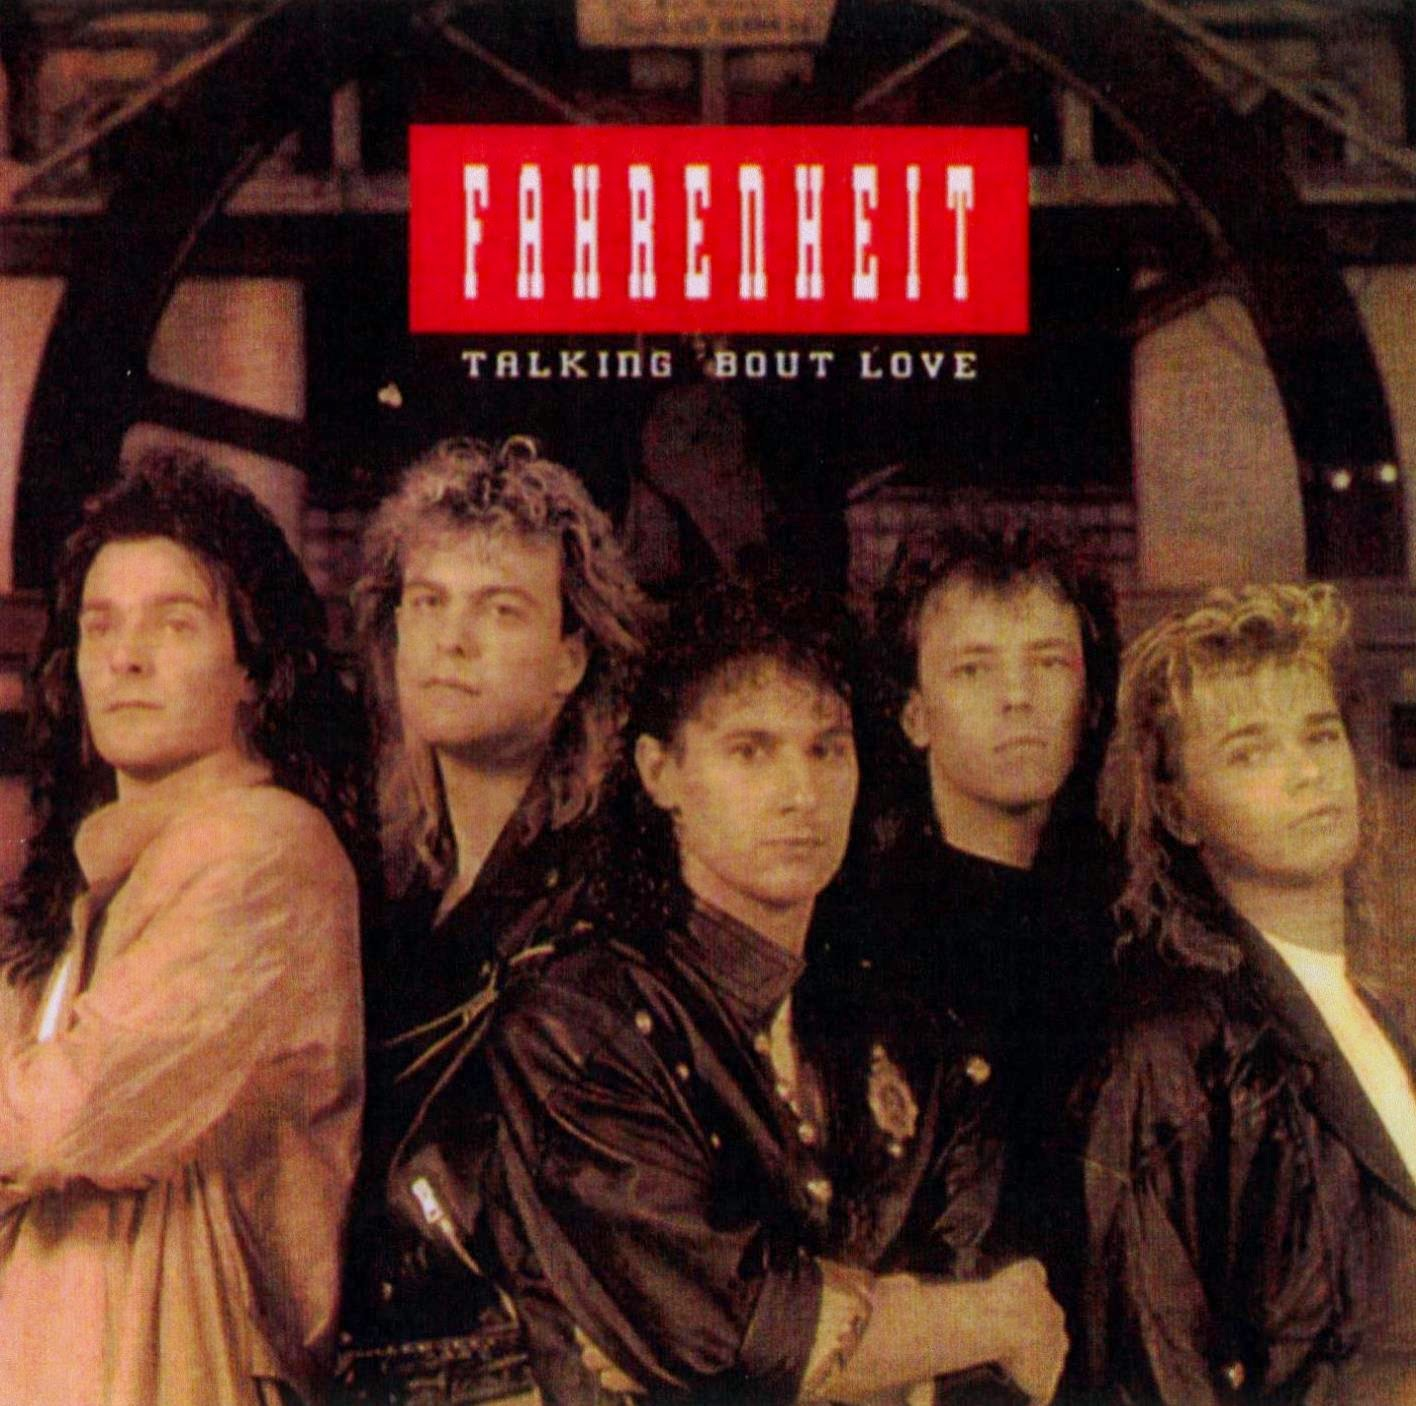 Fahrenheit Talking about love 1989 aor melodic rock music blogspot albums bands